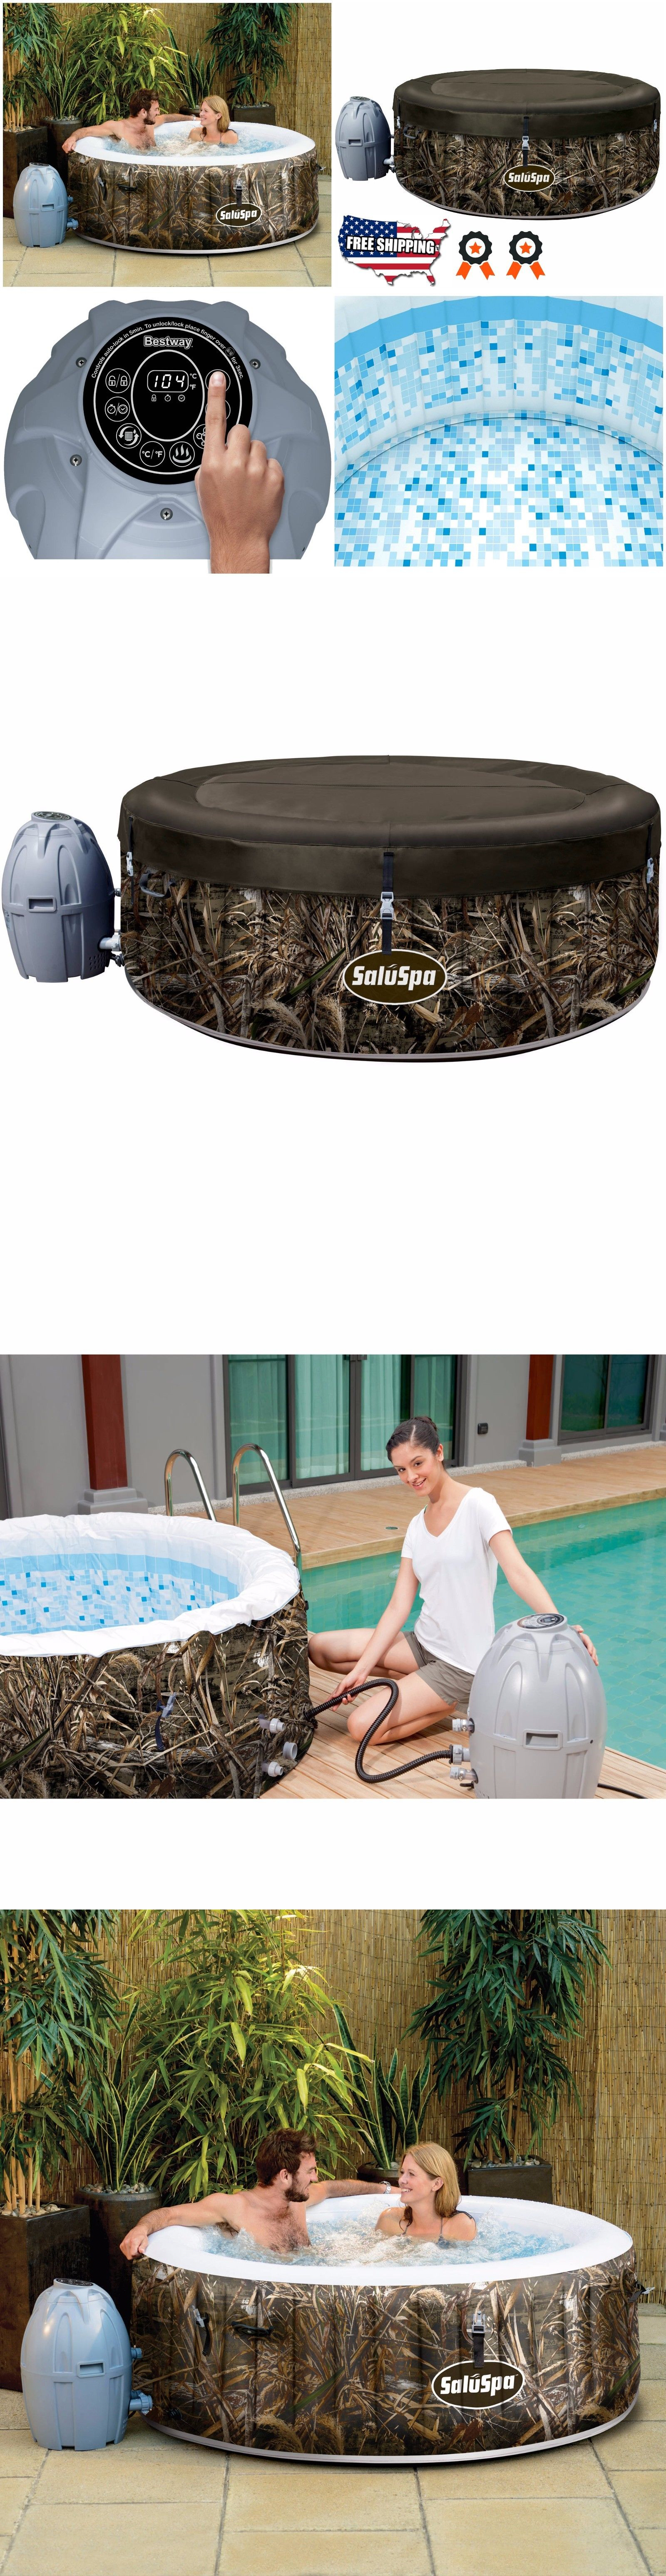 Spas and Hot Tubs 84211: Inflatable Hot Tub Jacuzzi Spa Air Jet 4 ...